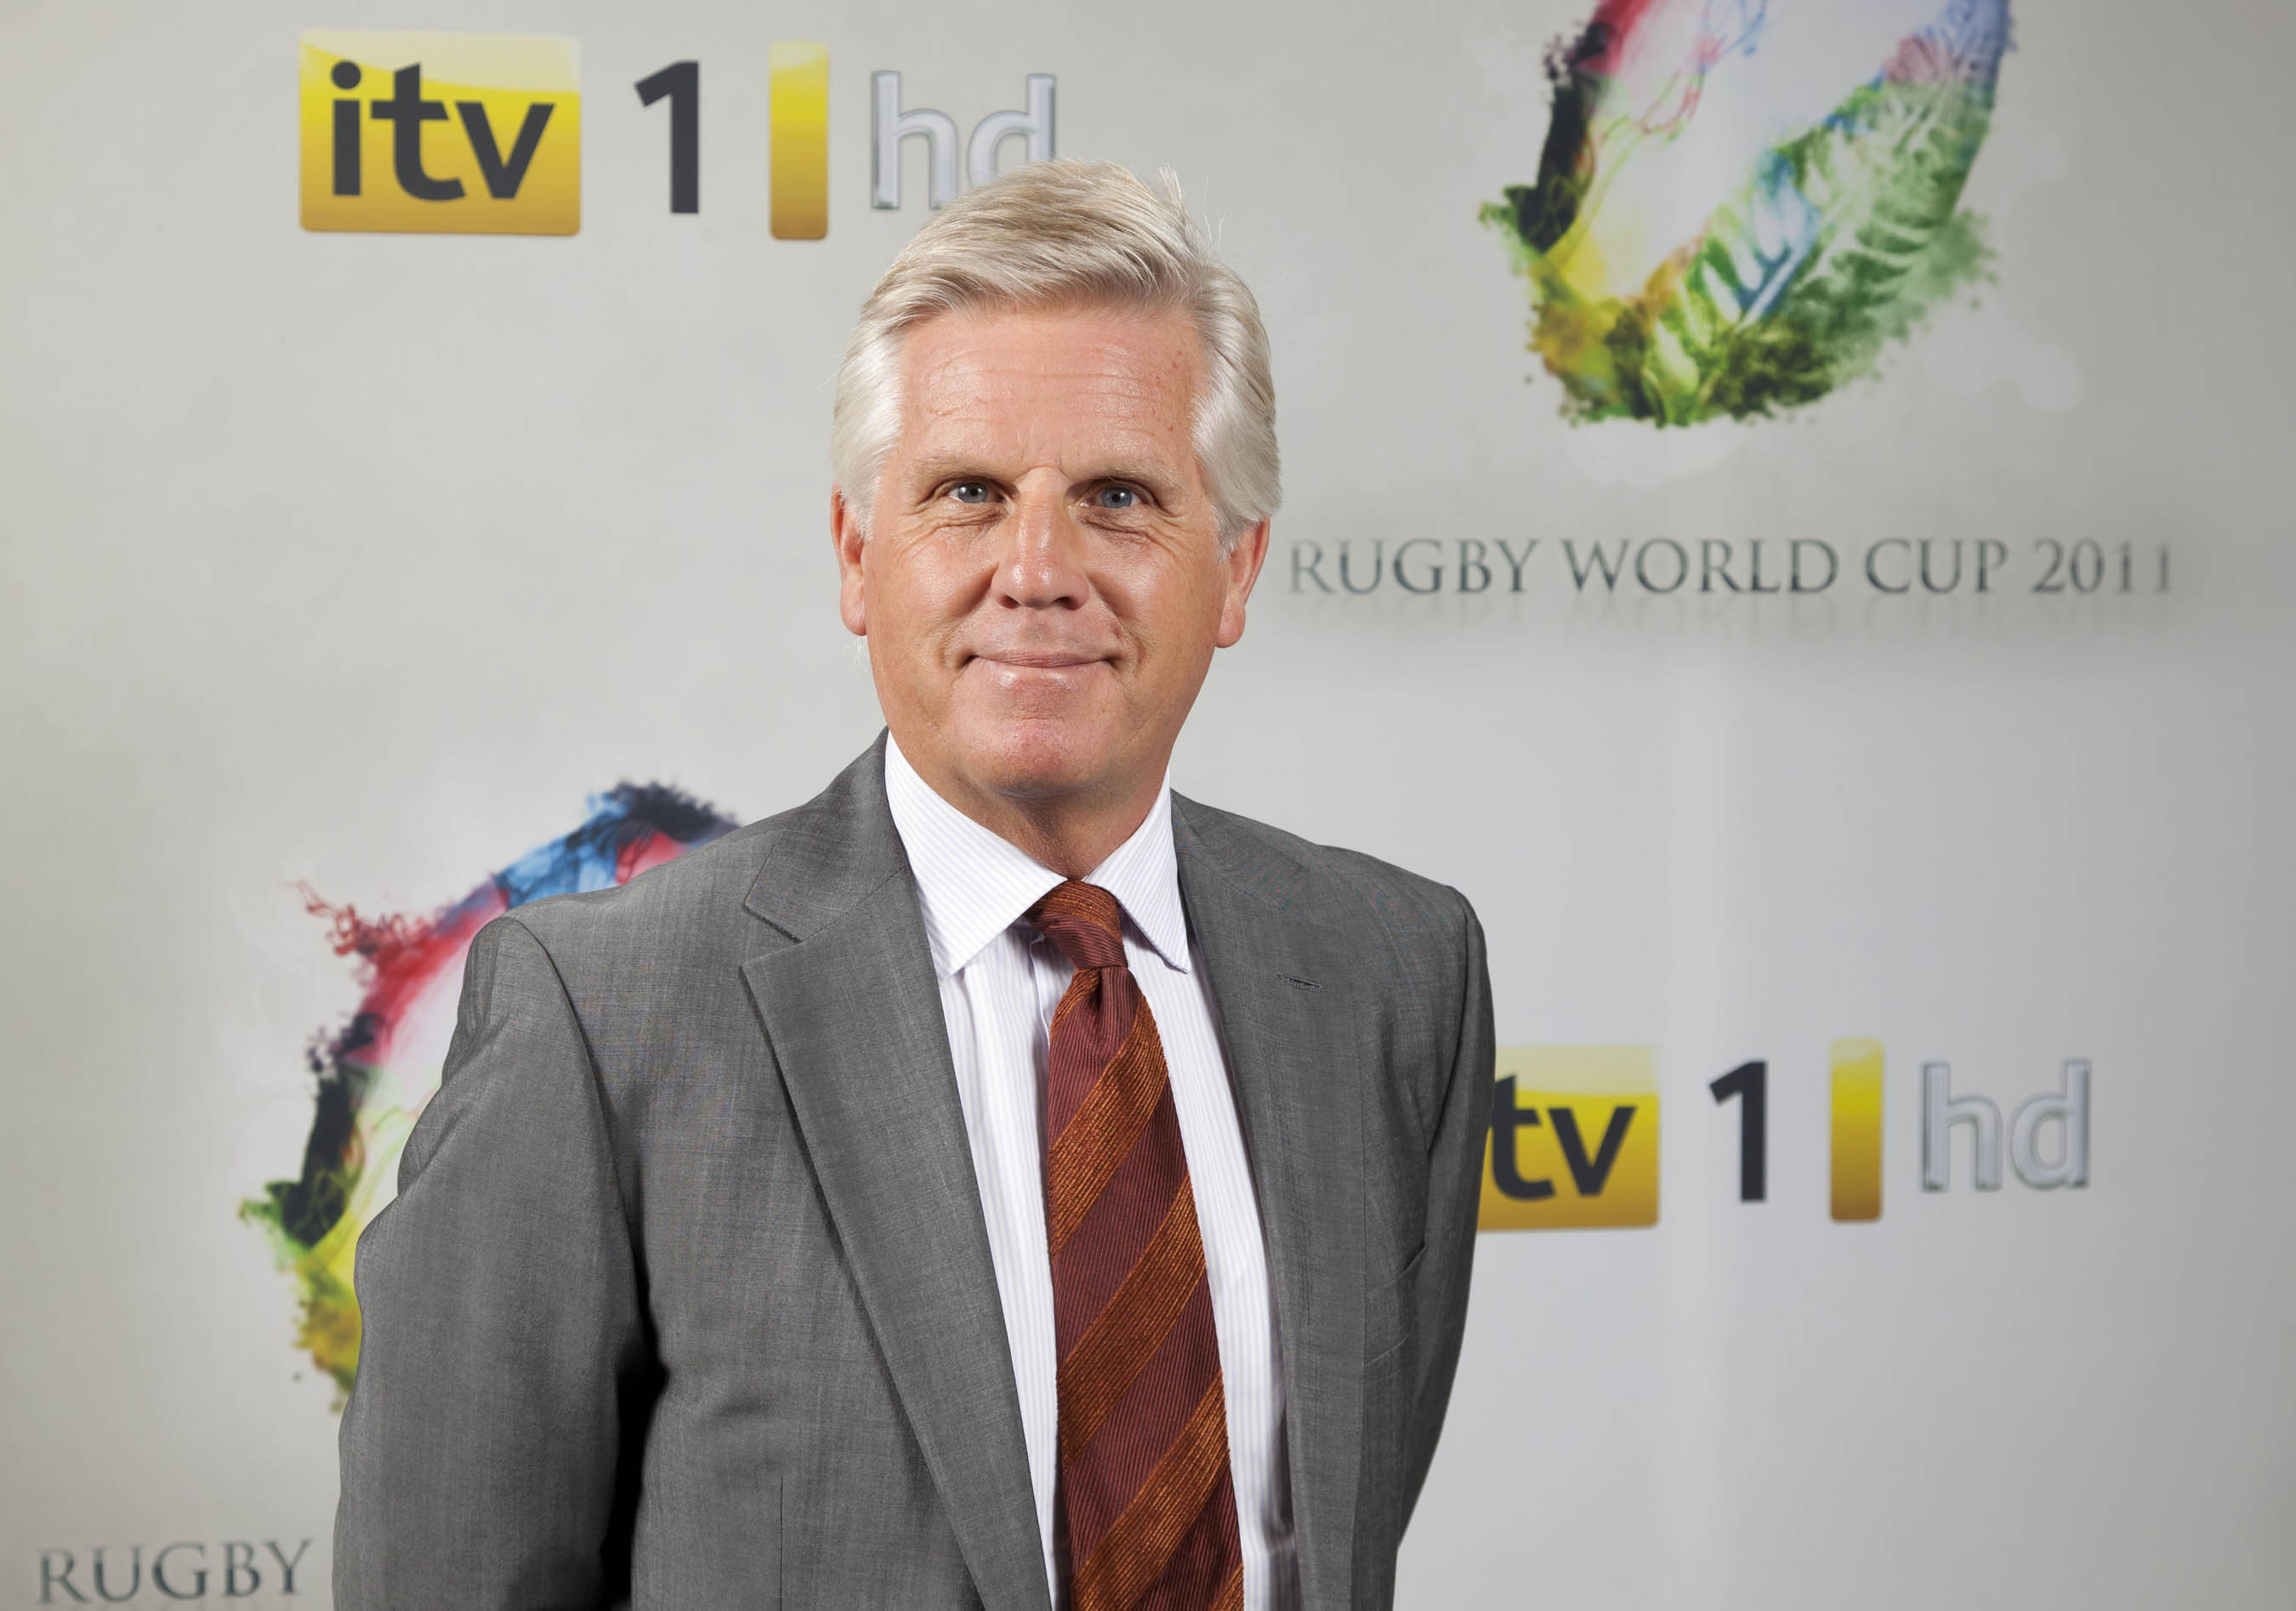 RUGBY UNION: Rugby World Cup 2011 on ITV